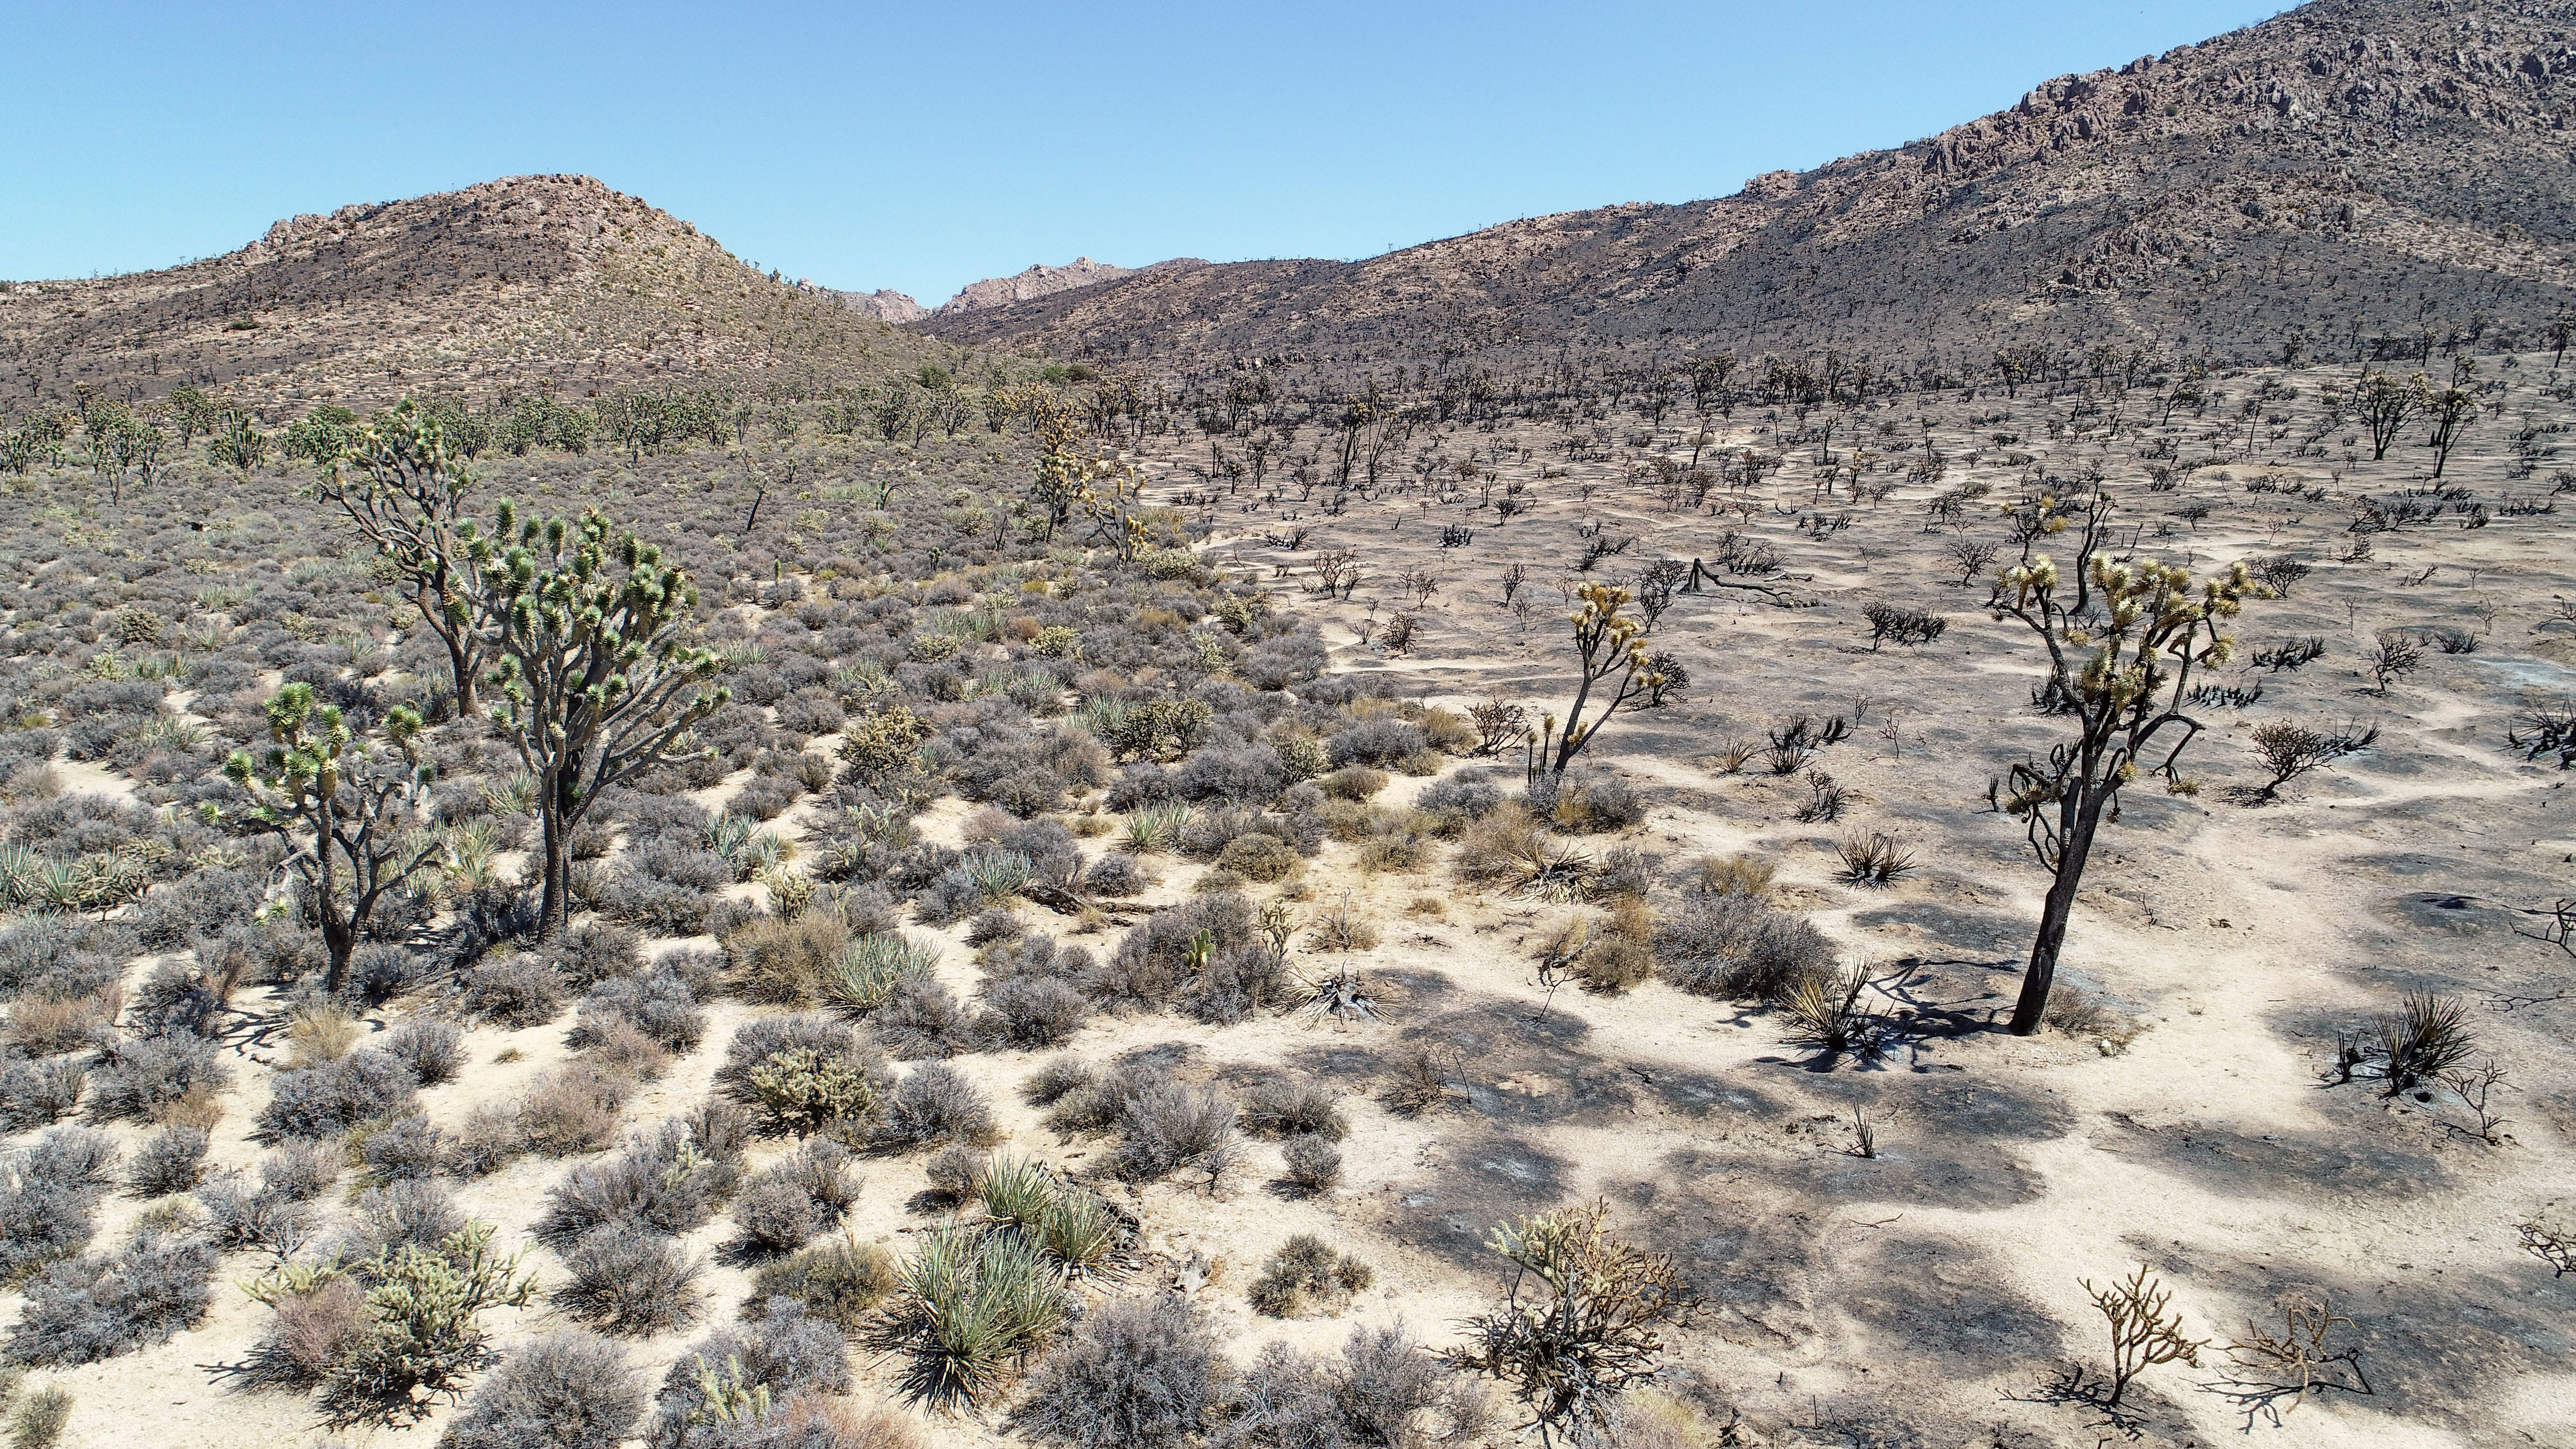 Plant life that burned in the Dome Fire, right, contrasts with an adjacent area that did not burn in the remote Mojave Desert near Cima, California, September 2, 2020.